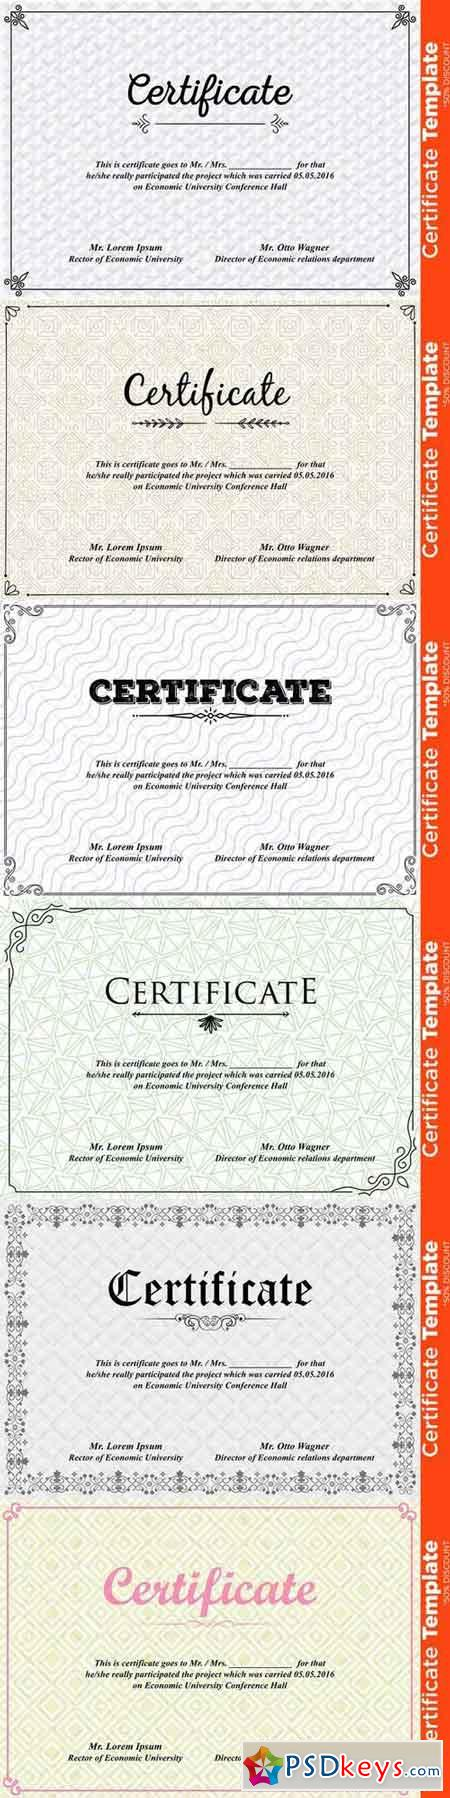 Certificate template psd 677908 free download photoshop for Download certificate template psd